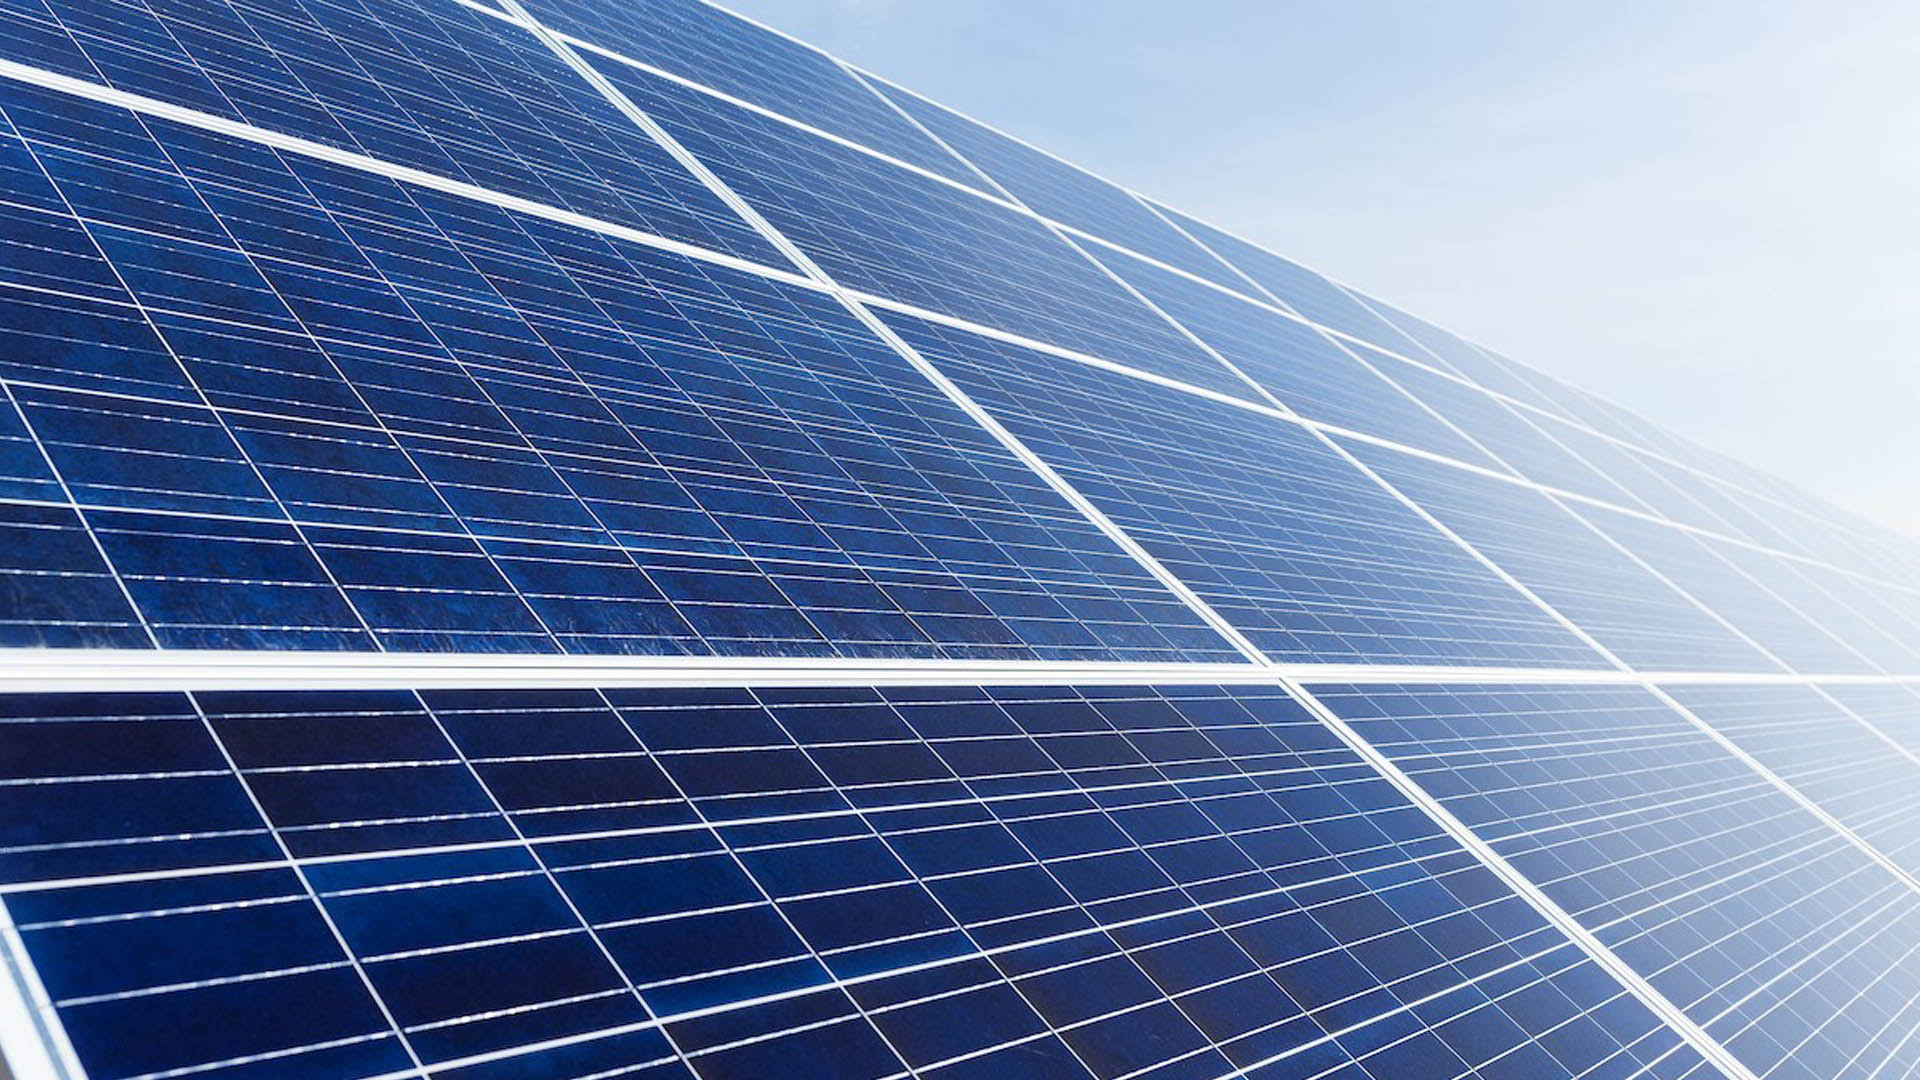 Vodacom invests in solar-powered sites as part of energy saving drive